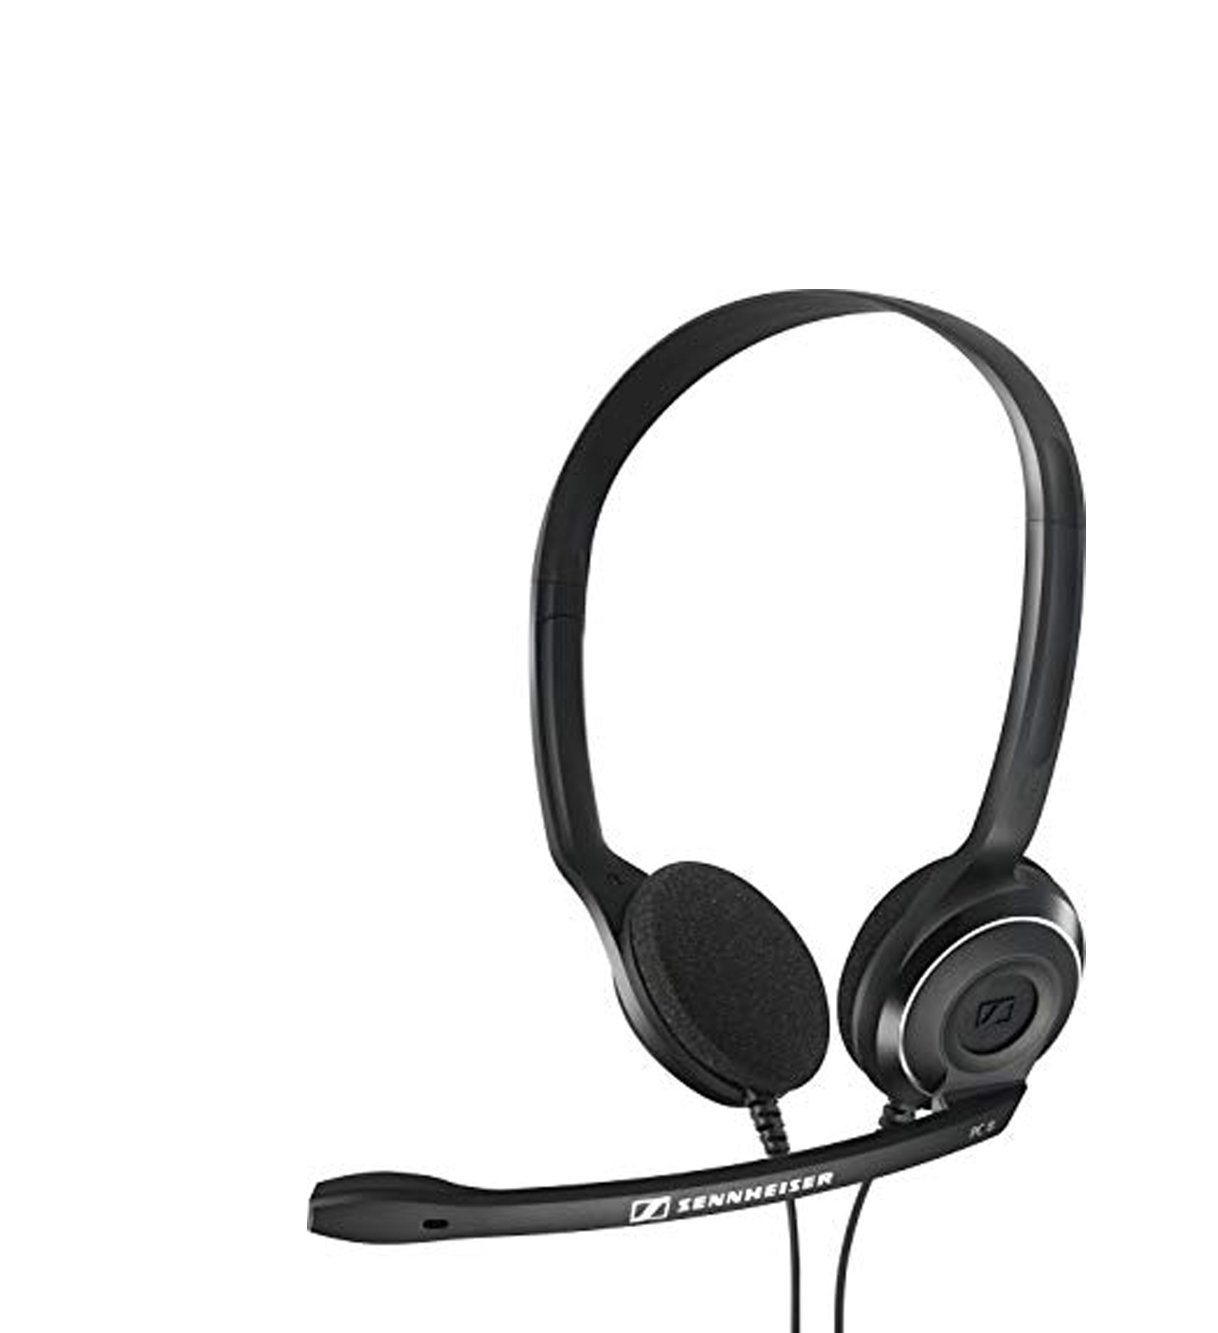 Microphone and Monitor Headset